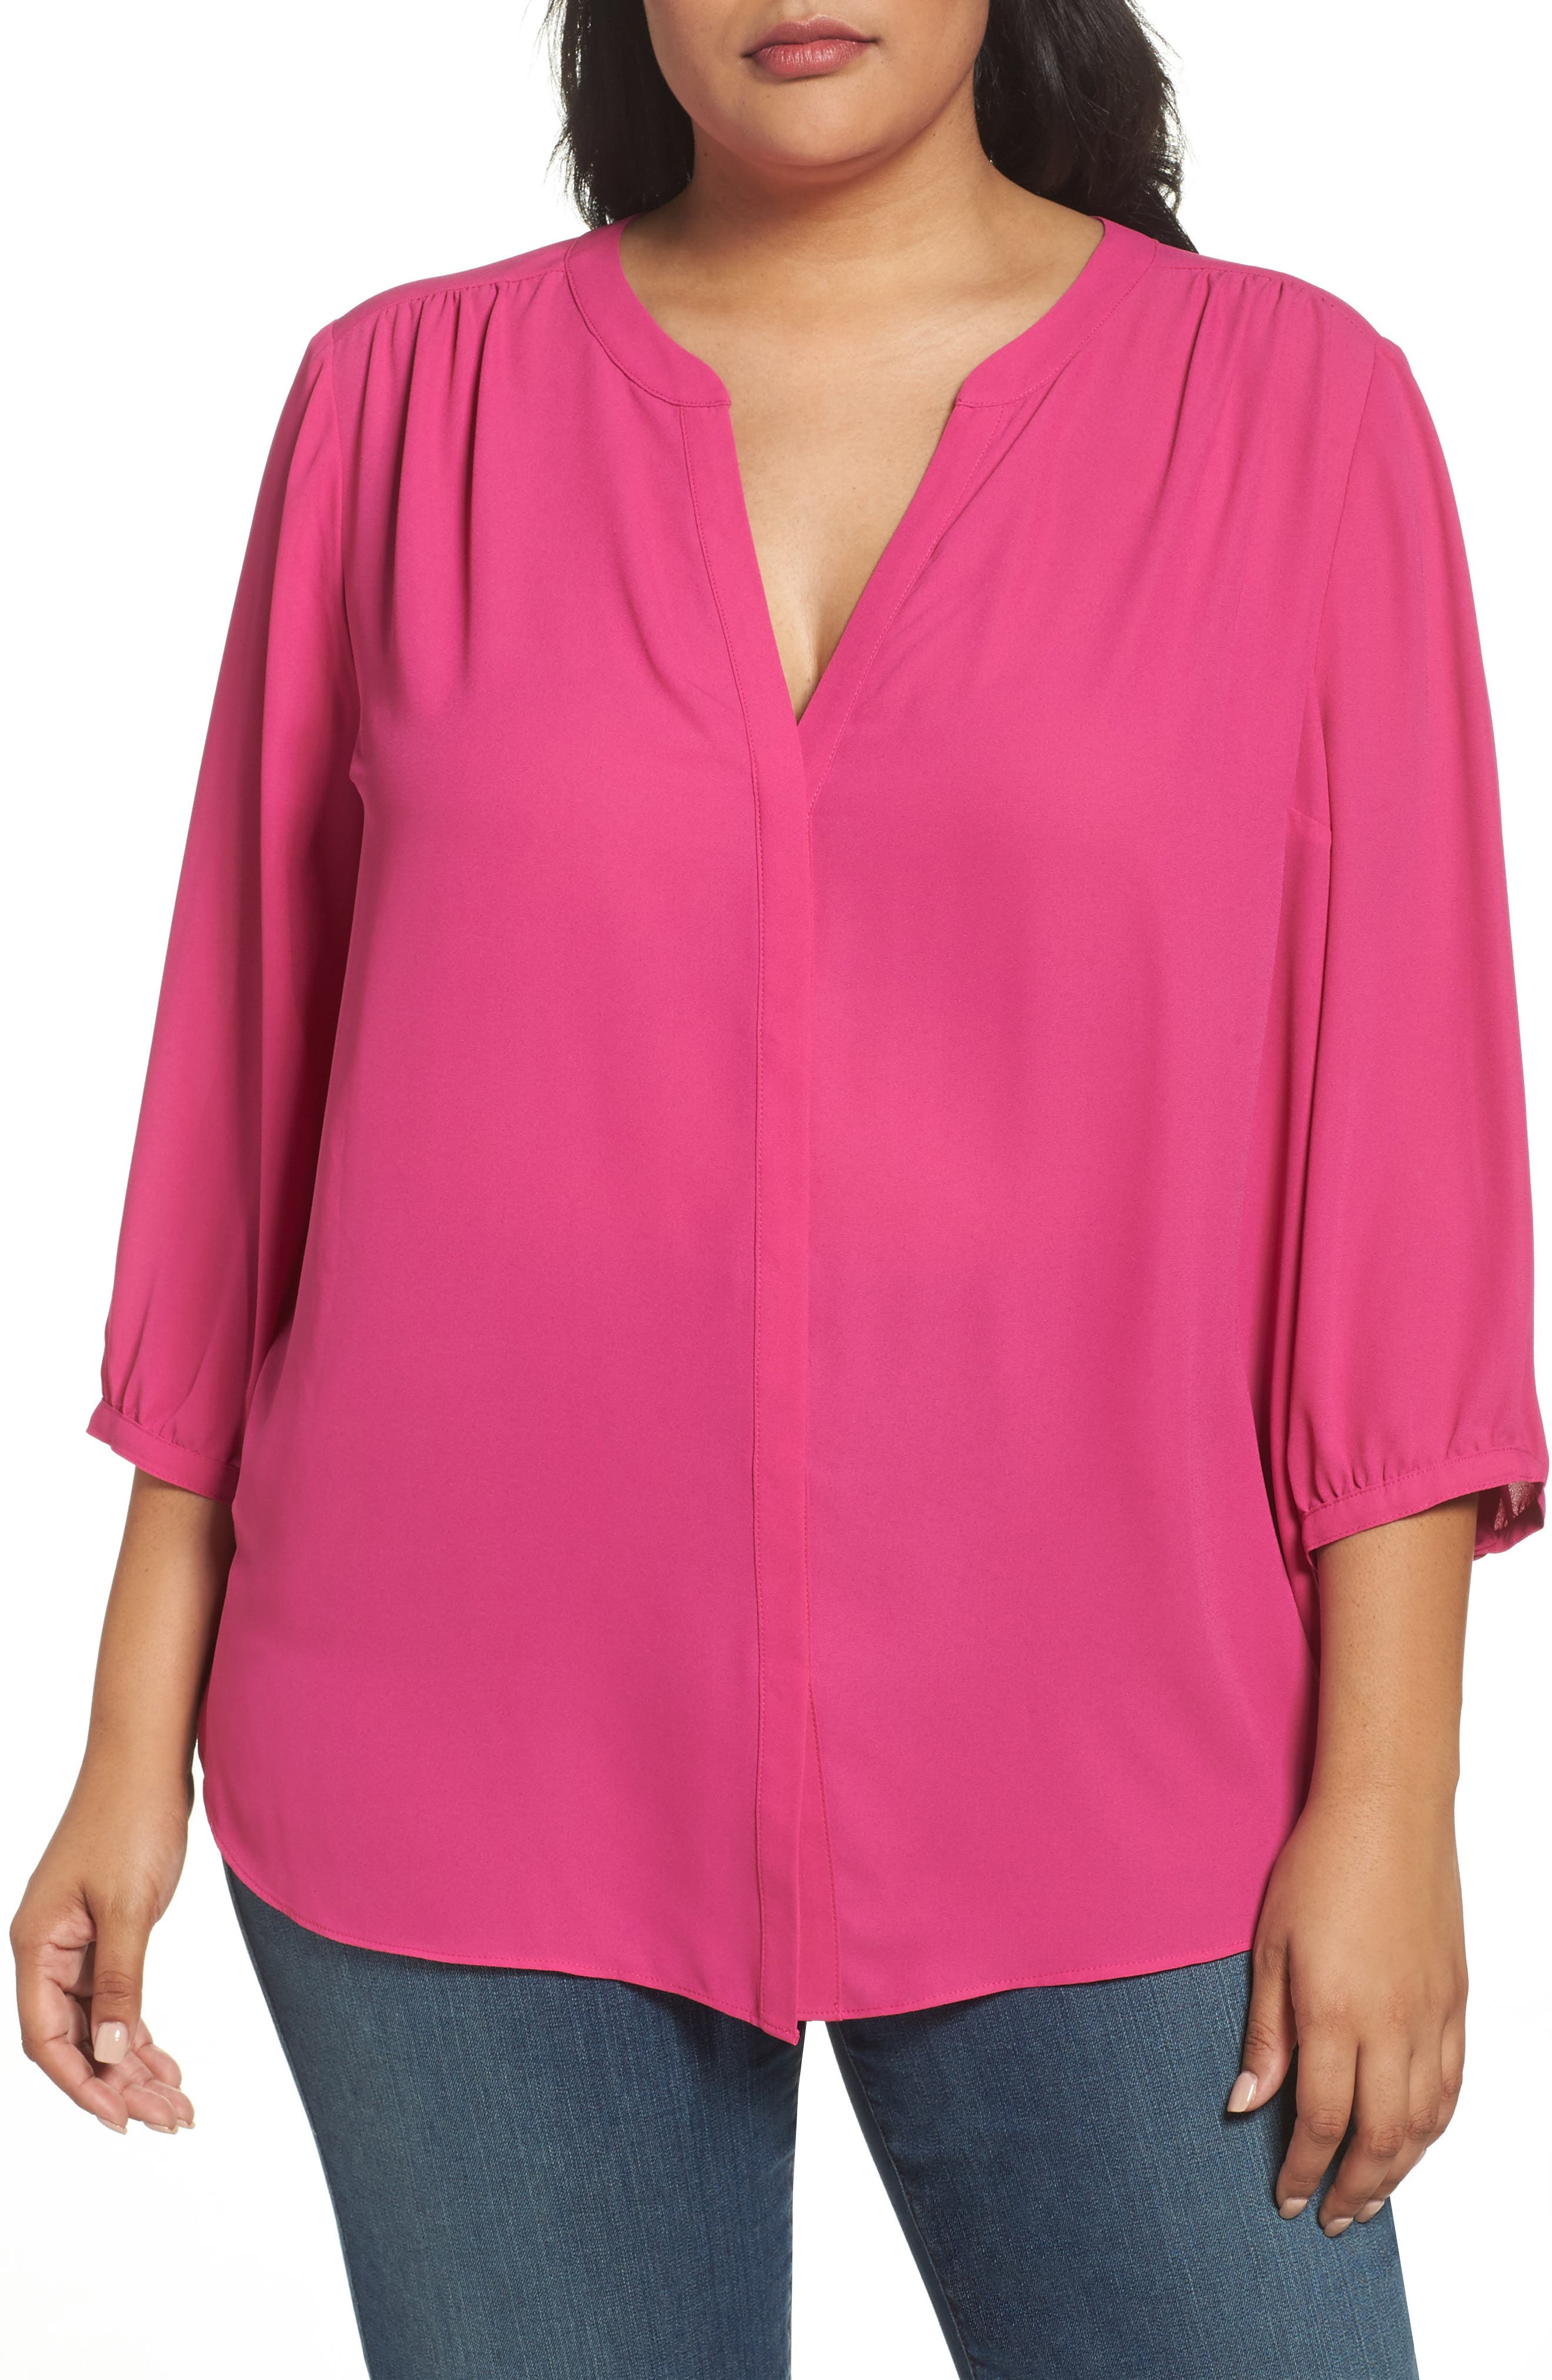 Alternate Image 1 Selected - NYDJ High/Low Blouse (Plus Size)